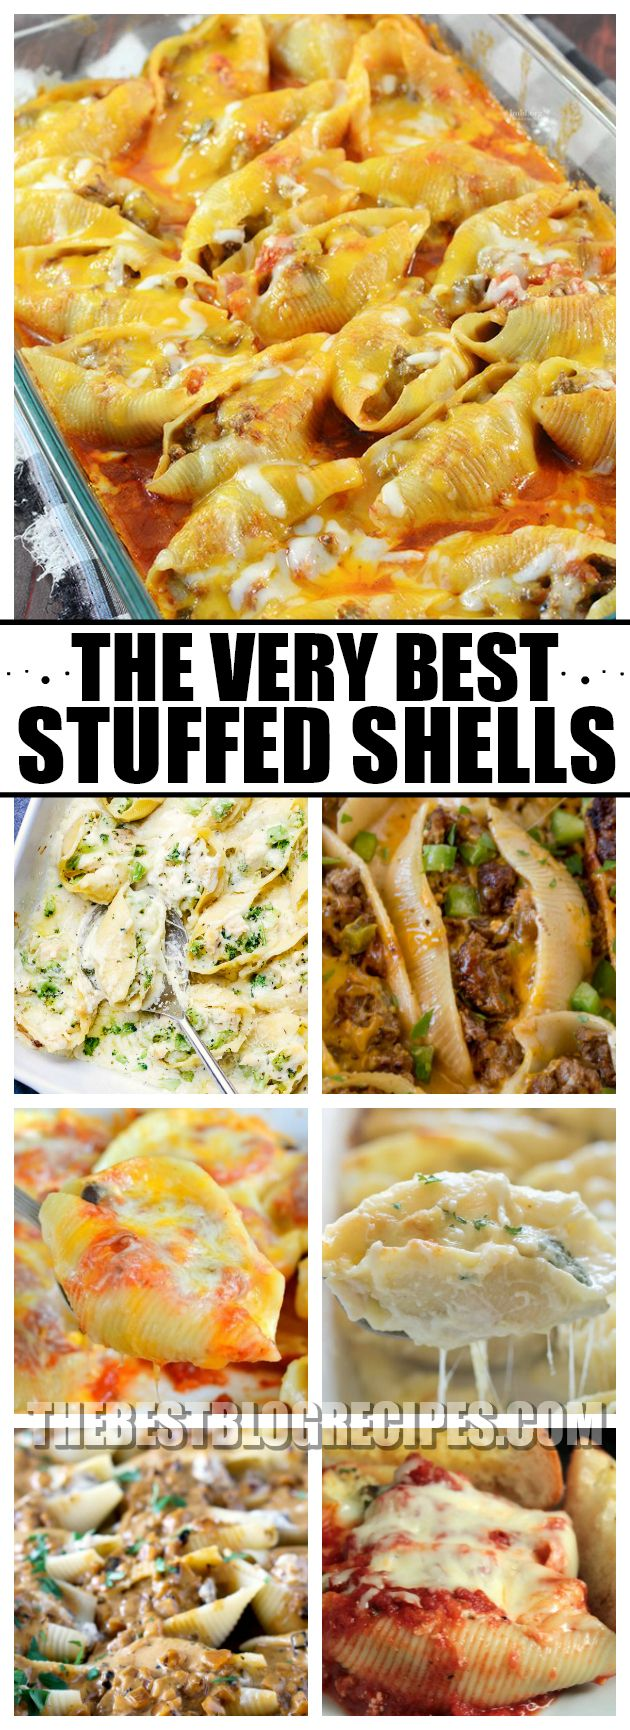 Stuffed shells are amazing and so easy to make, which is why we have compiled The Best Stuffed Shells Recipes! These recipes are perfect for a lazy weeknight meal, or a dinner to impress. With delicious and savory flavors, no one will be able to resist these recipes! via @bestblogrecipes